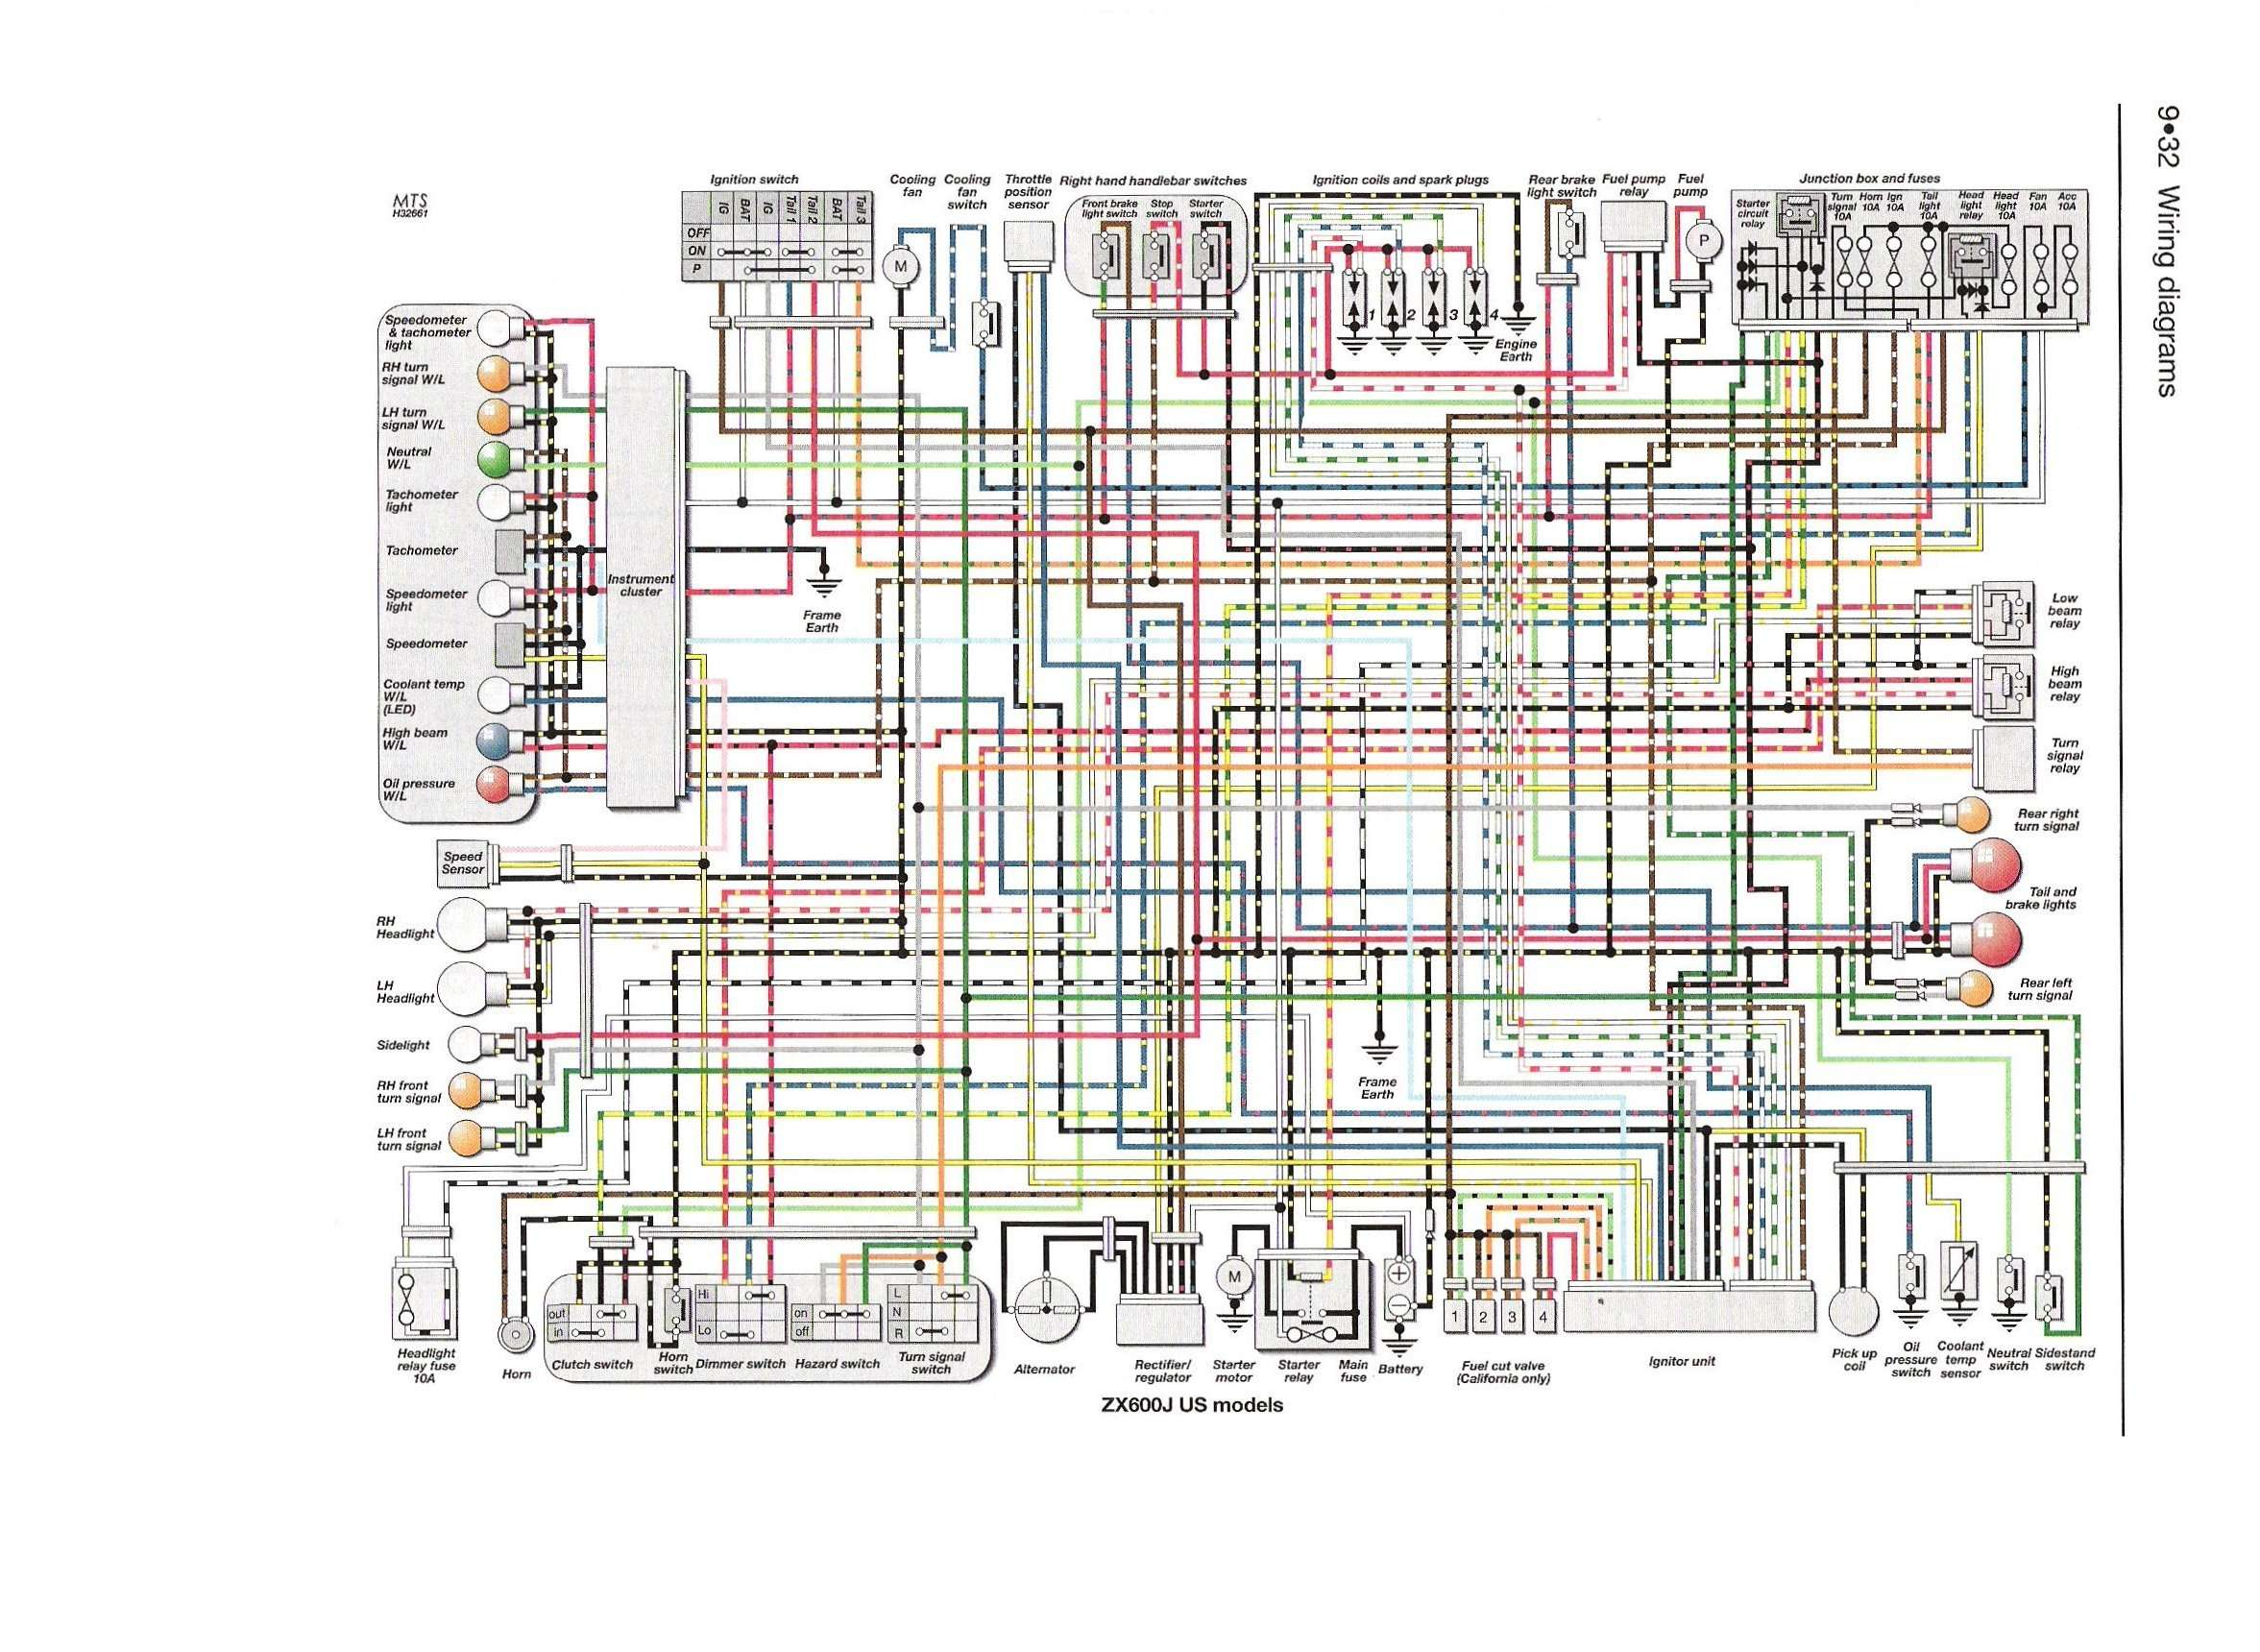 Fuse Box Diagram 1995 Zx 600r - 1998 Volkswagen Jetta Engine Diagram for Wiring  Diagram SchematicsWiring Diagram Schematics